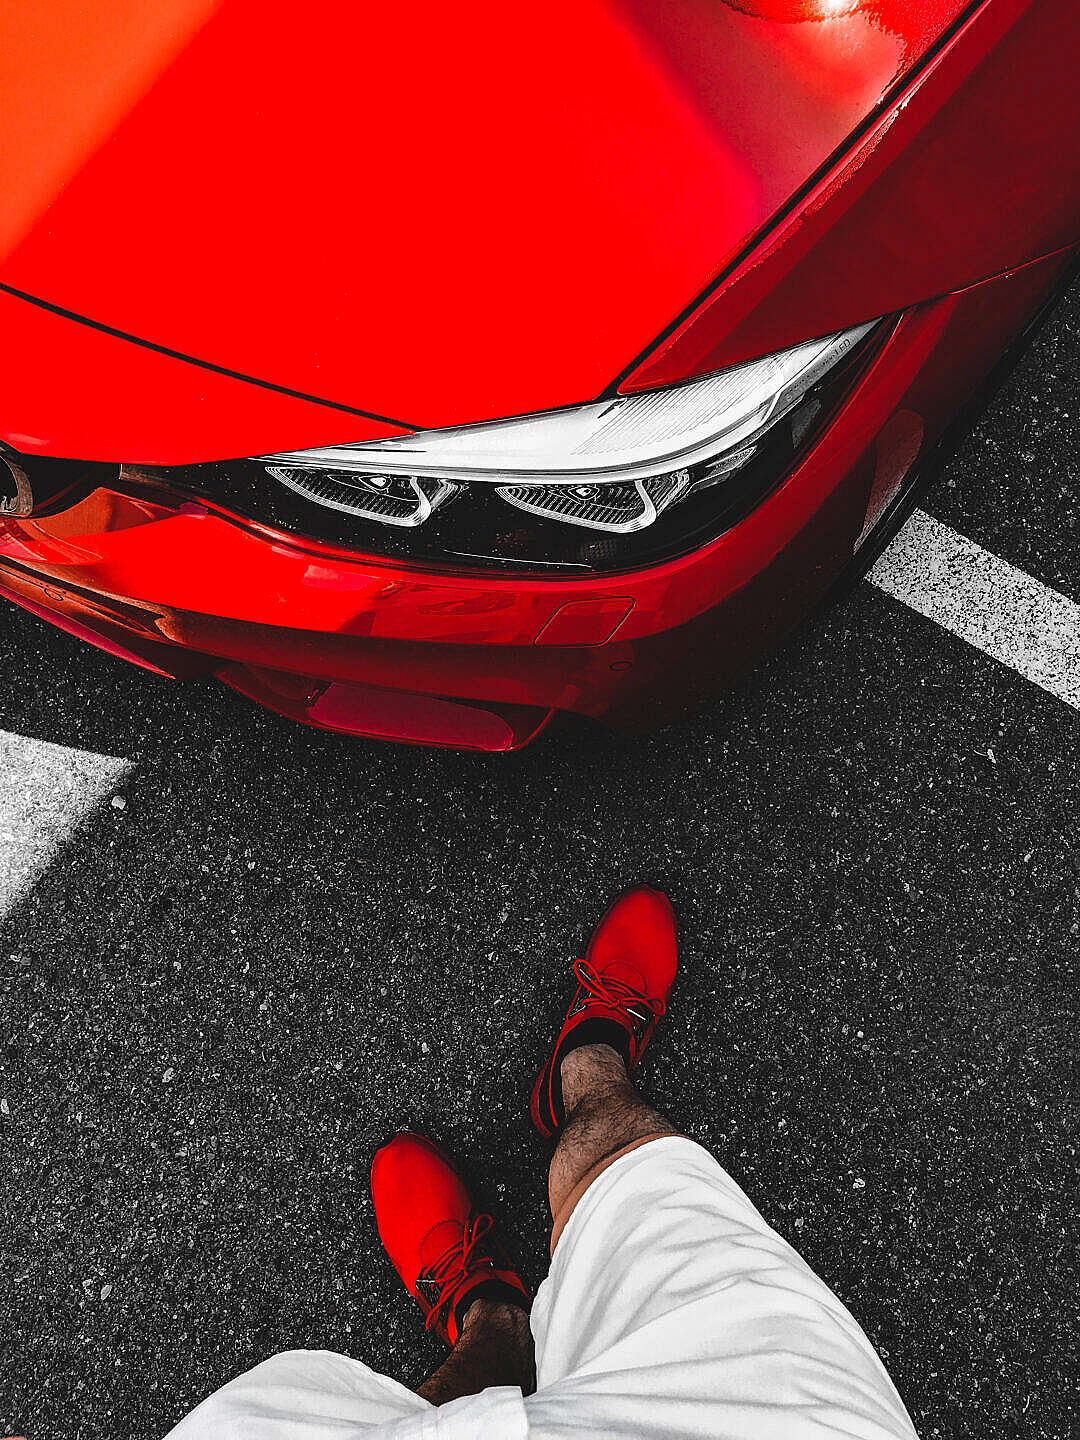 Download Man in Red Shoes Standing in Front of Ferrari-Red BMW FREE Stock Photo